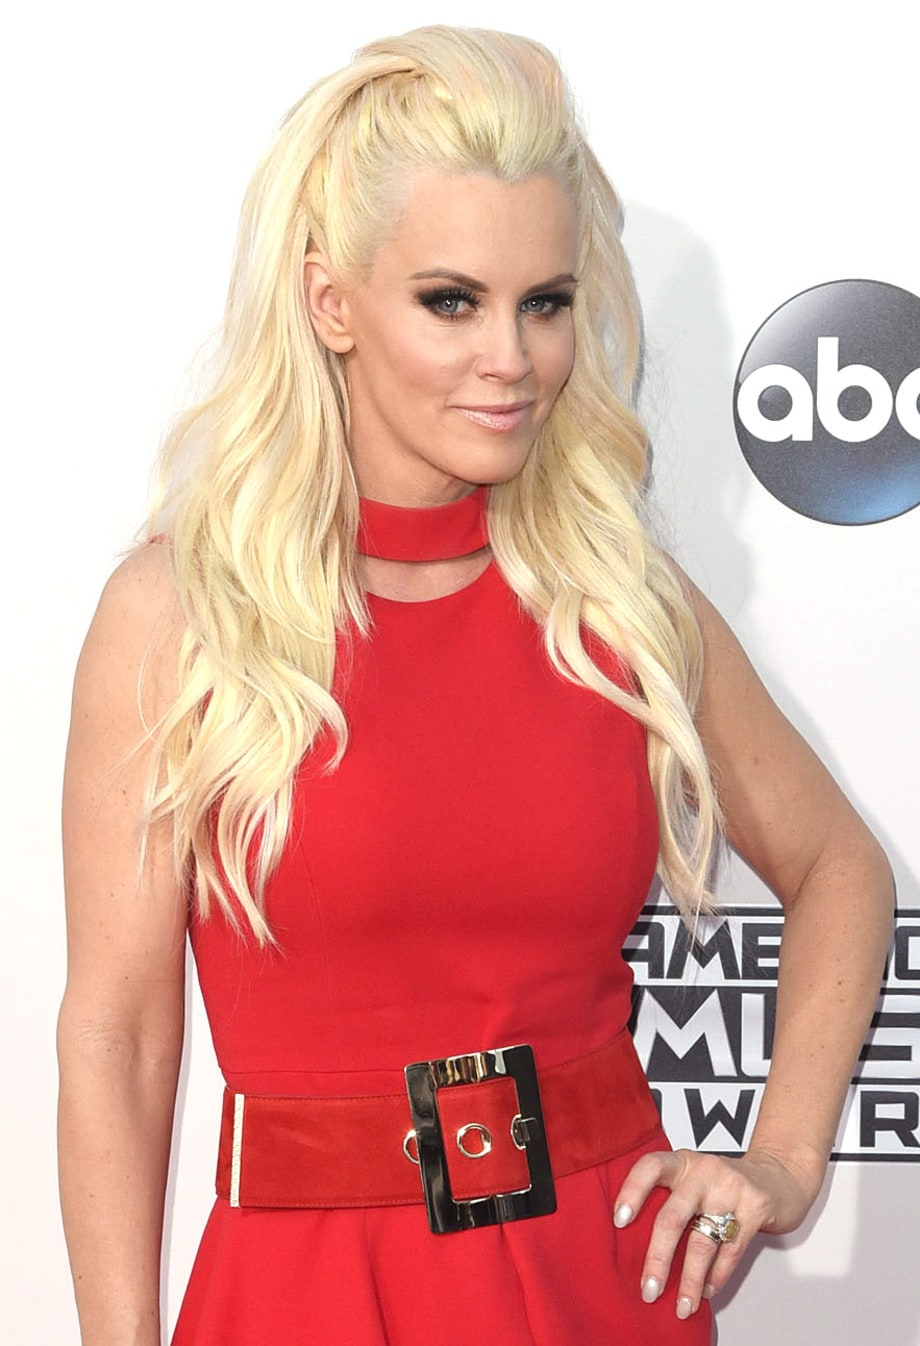 Jenny mccarthy on amber rose kanye west twitter feud there s